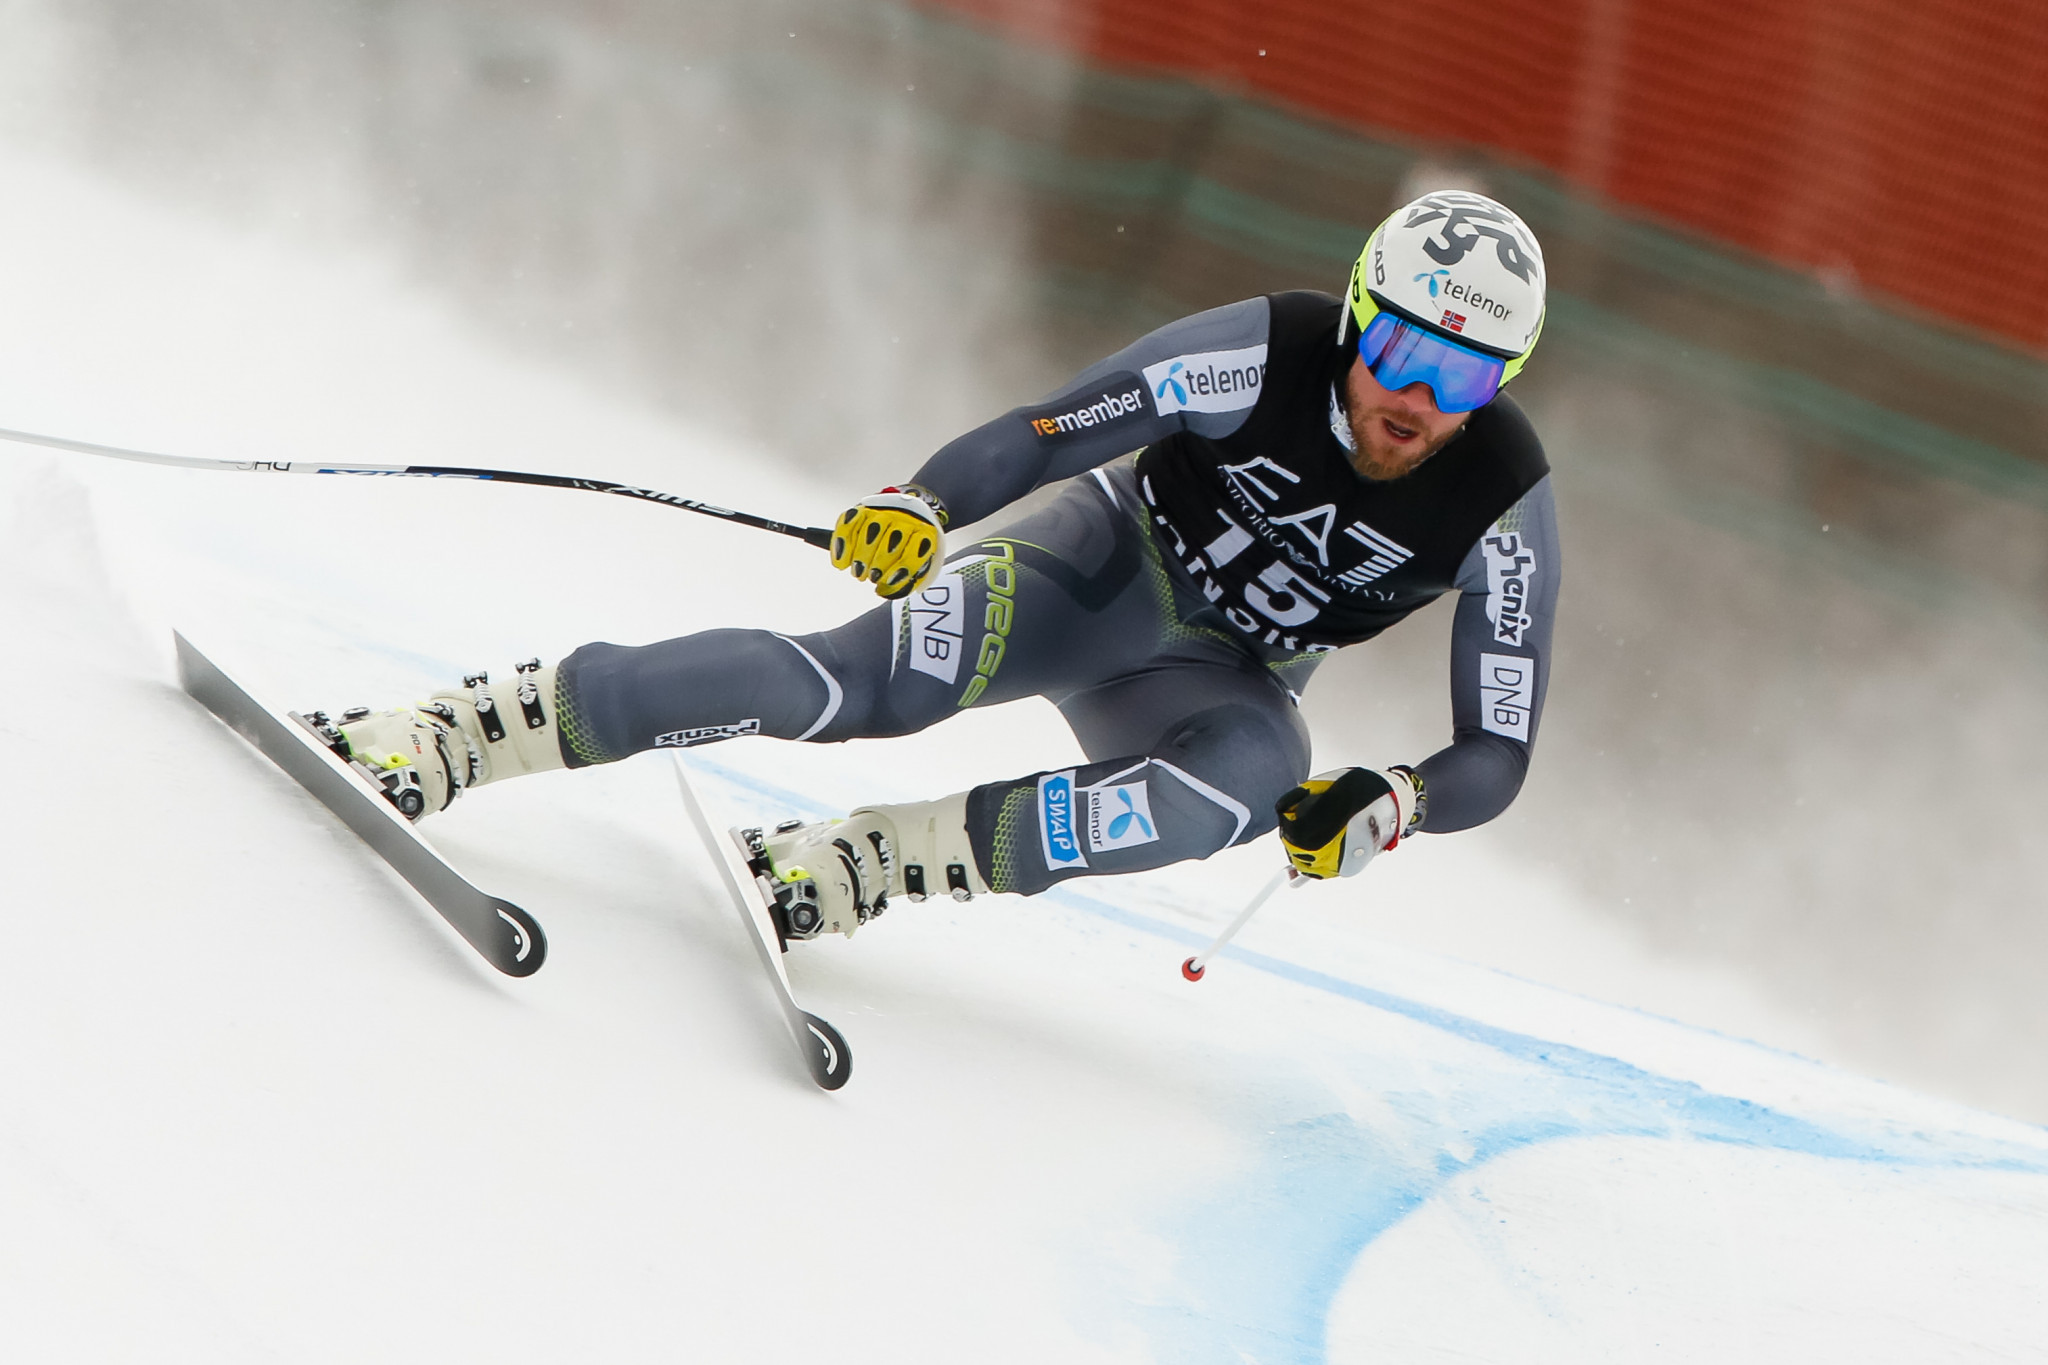 Jansrud clocks quickest run in training as World Cup downhill cancelled in Kvitfjell